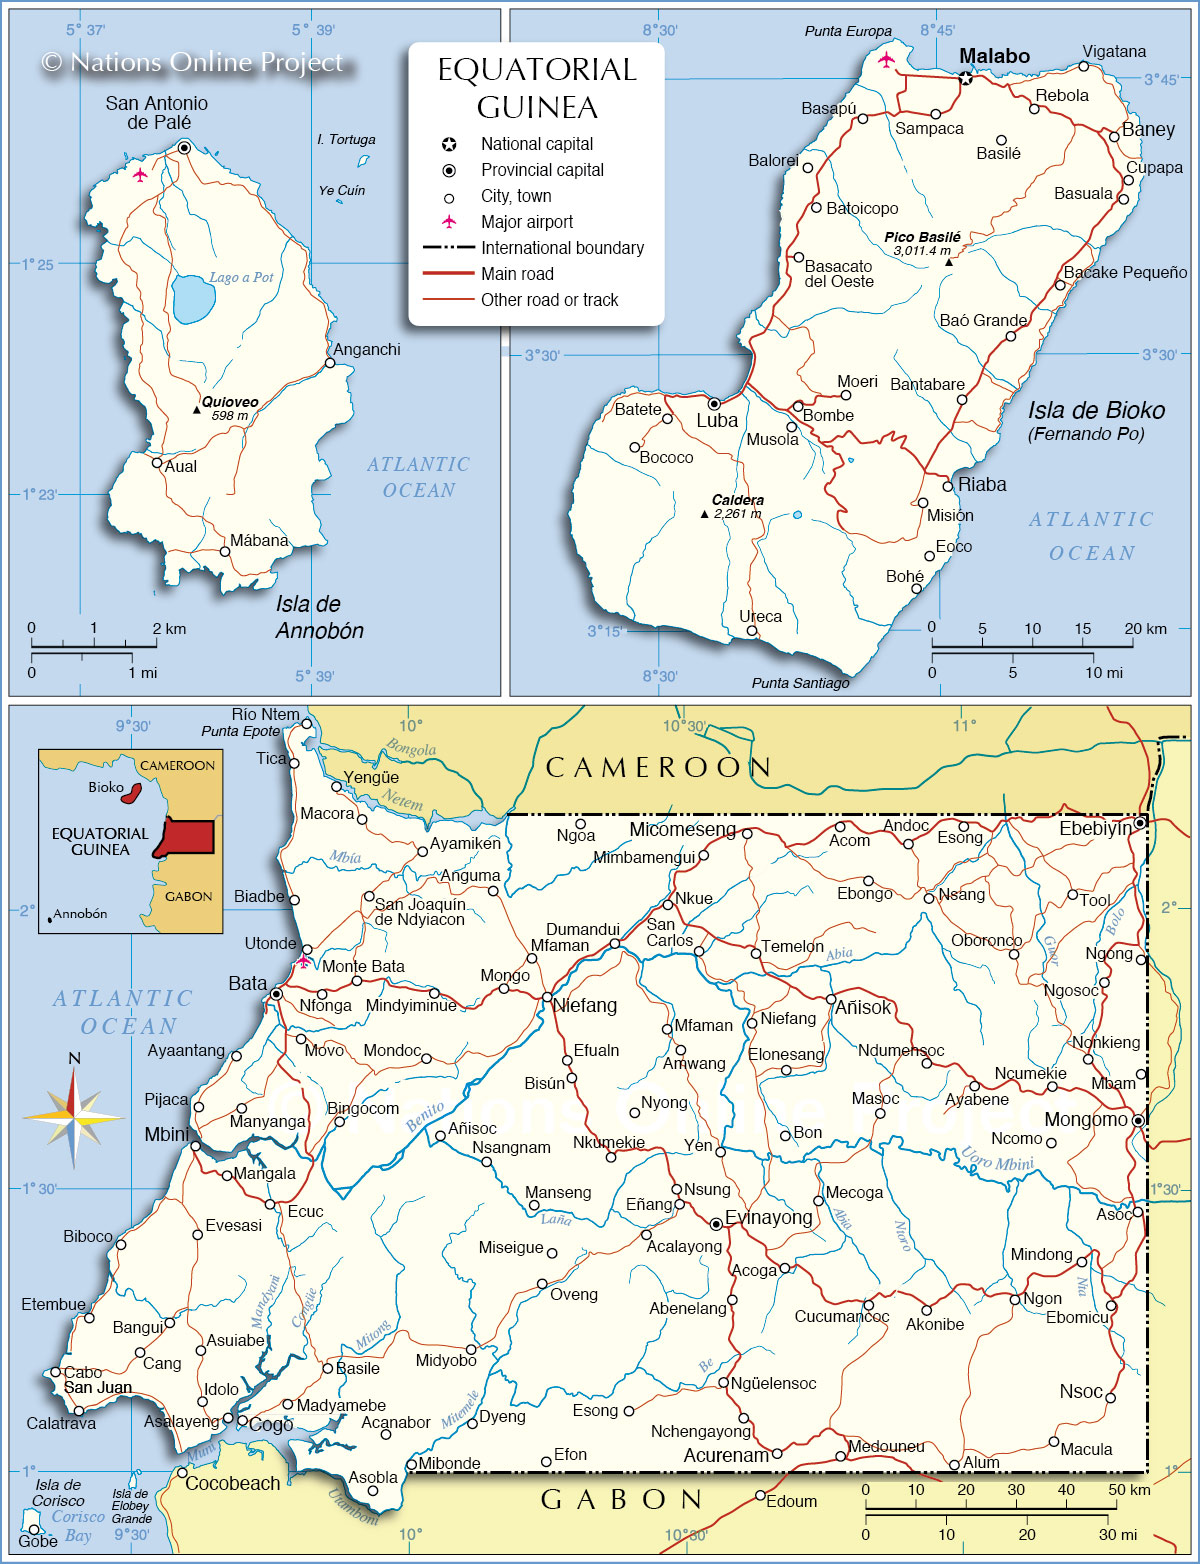 Political Map of Equatorial Guinea Nations Online Project